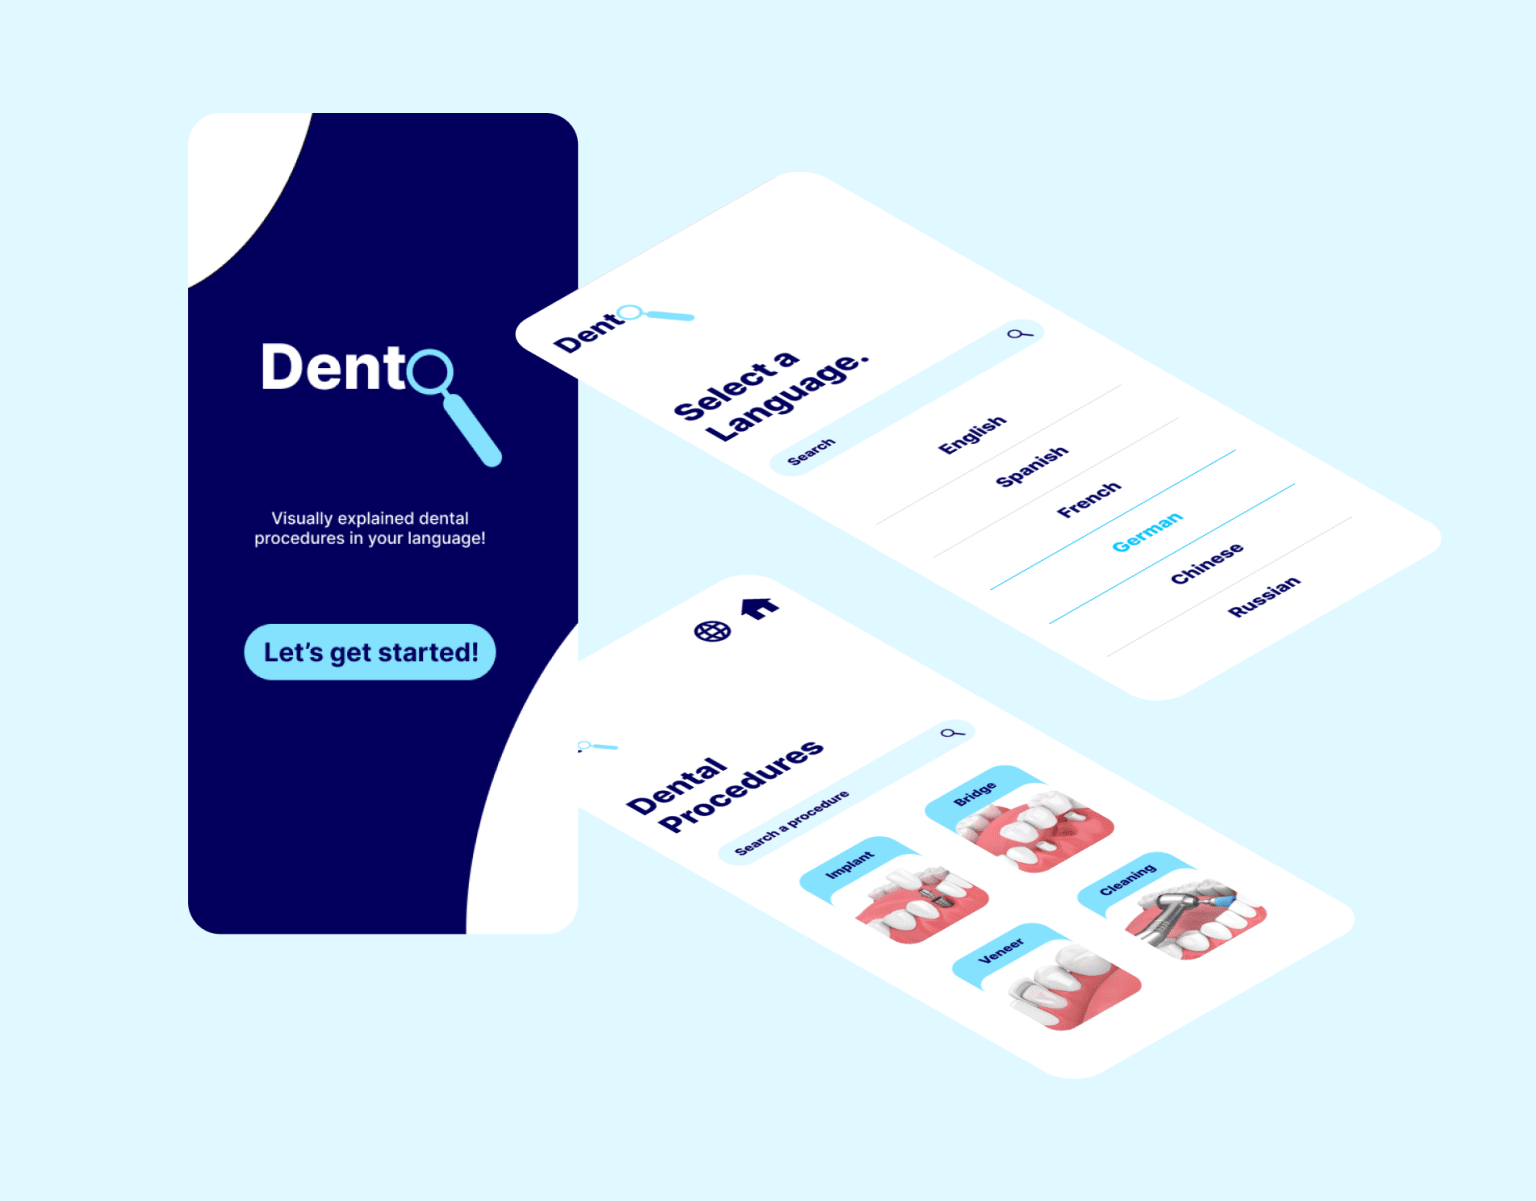 Dento– Visually Understand and Learn Dental Procedures in Any Language